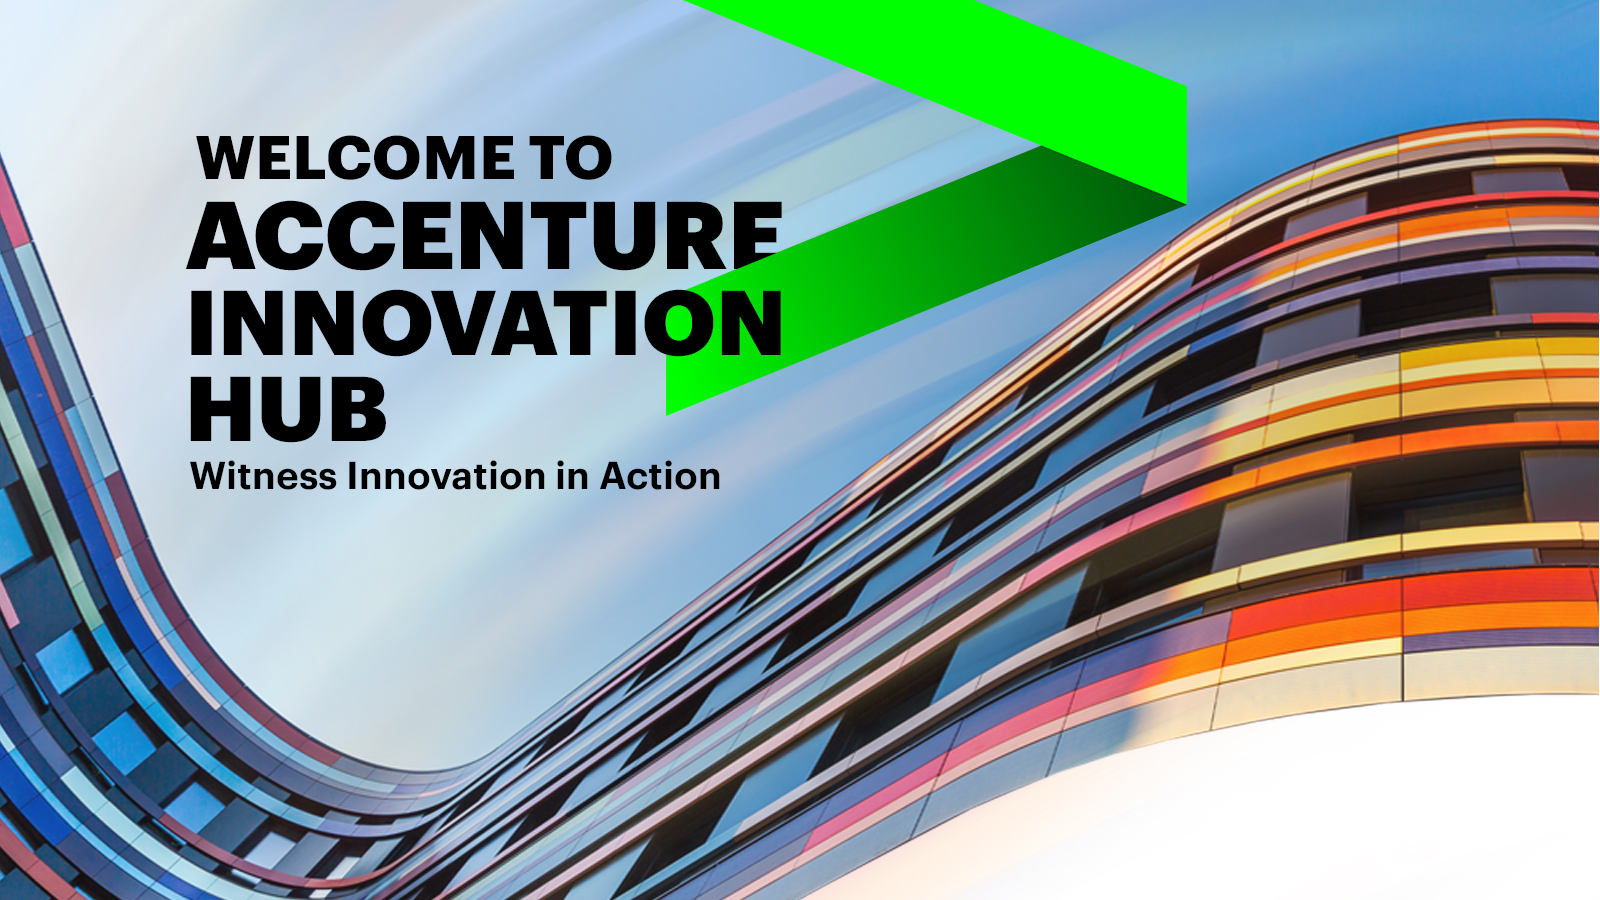 accenture innovation hub in india